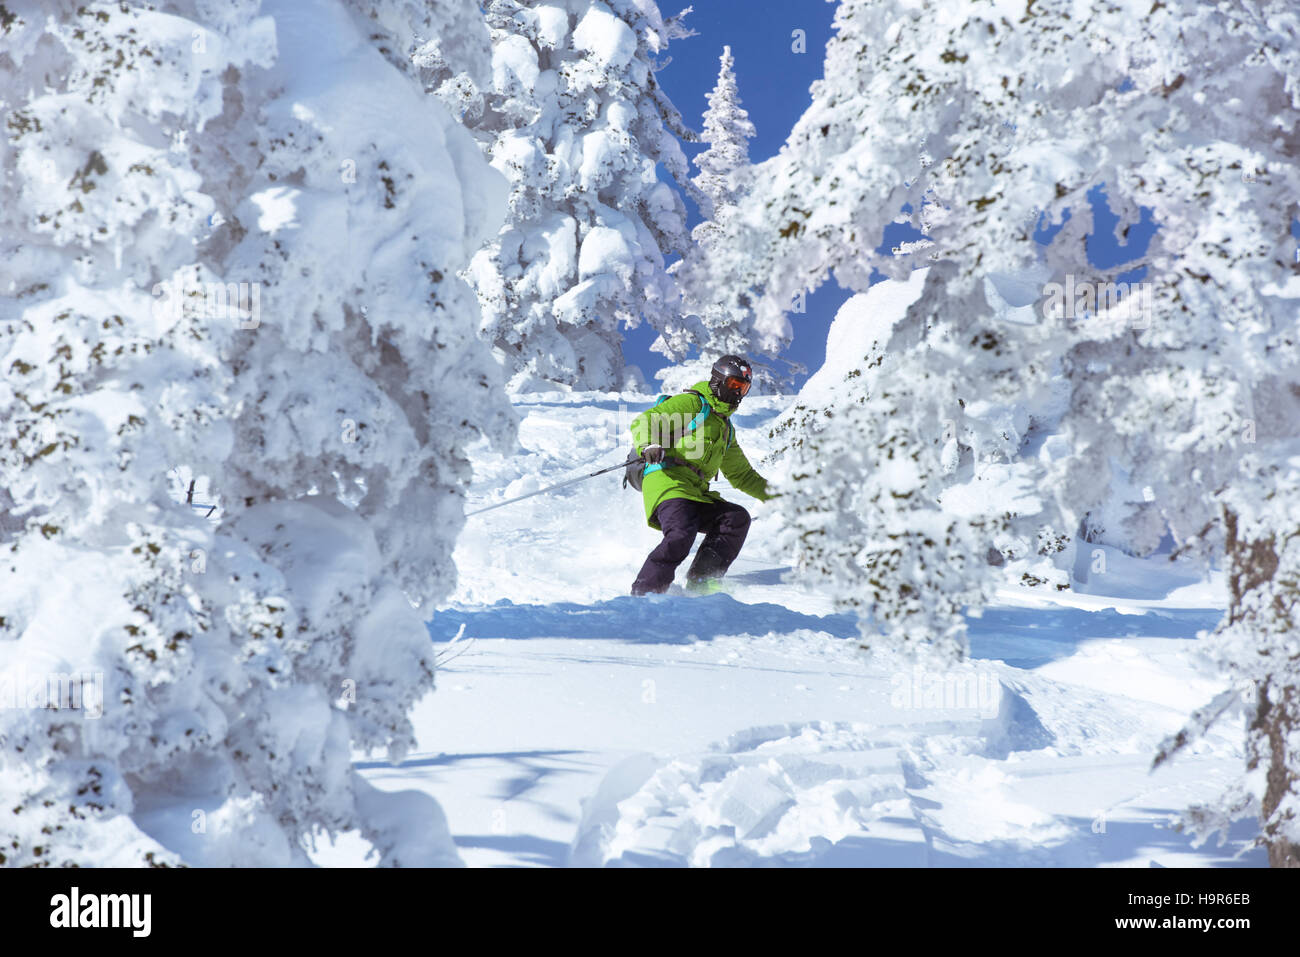 Skiers freeride forest downhill skiing - Stock Image